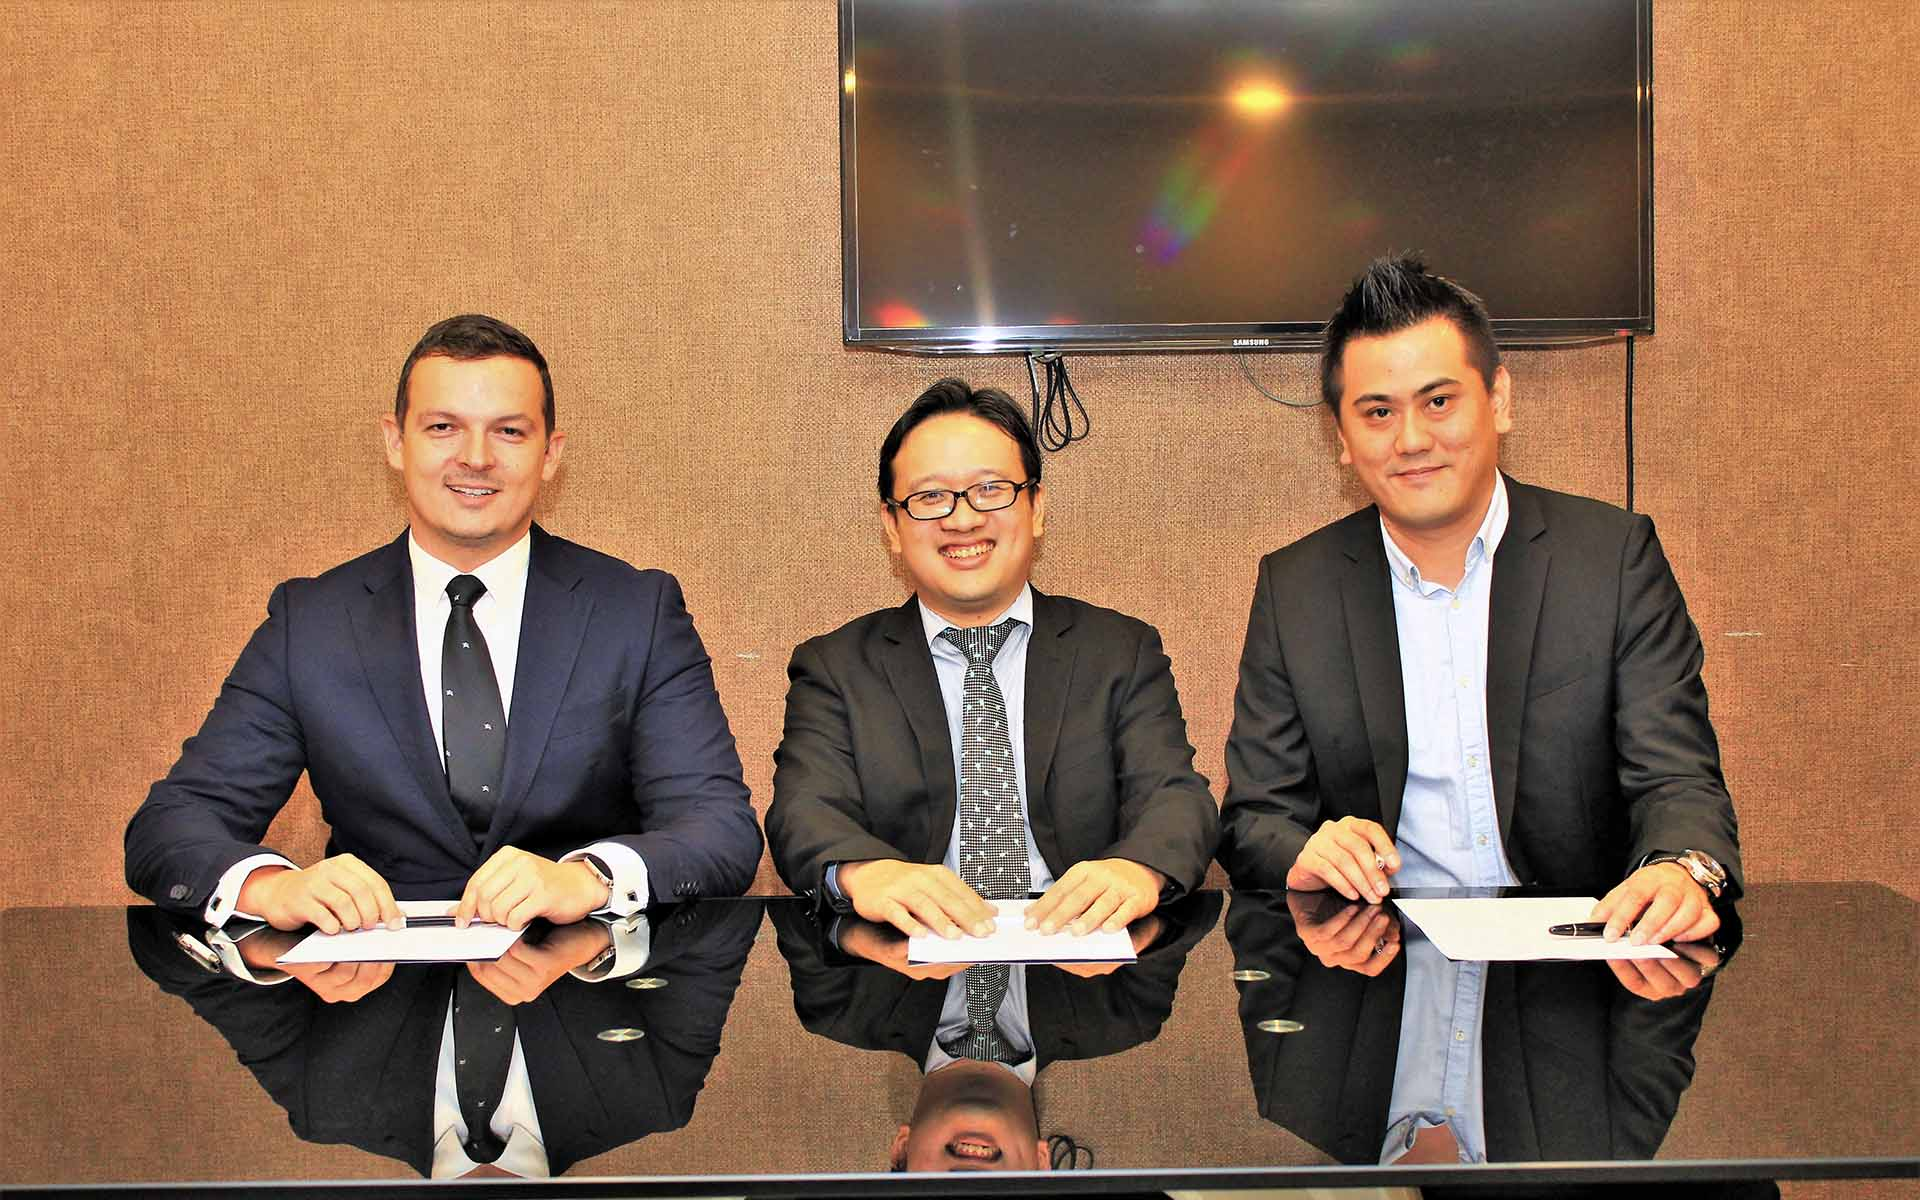 Swiss Blockchain Sophiatx Rolls out Expansion to Asia by Joining Forces with Cheng & Co